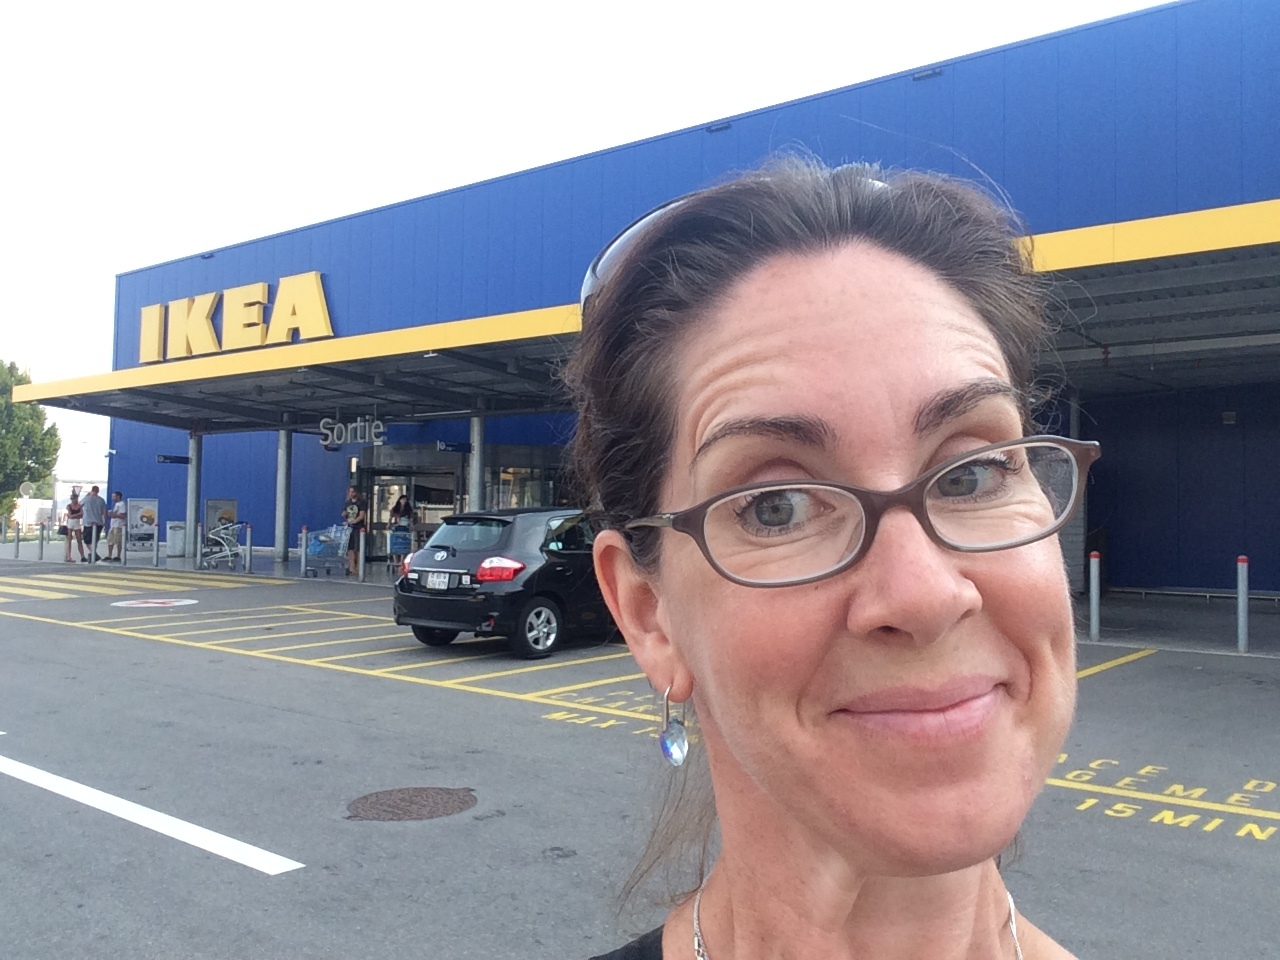 IKEA Switzerland - on my way to furnish an apartment!